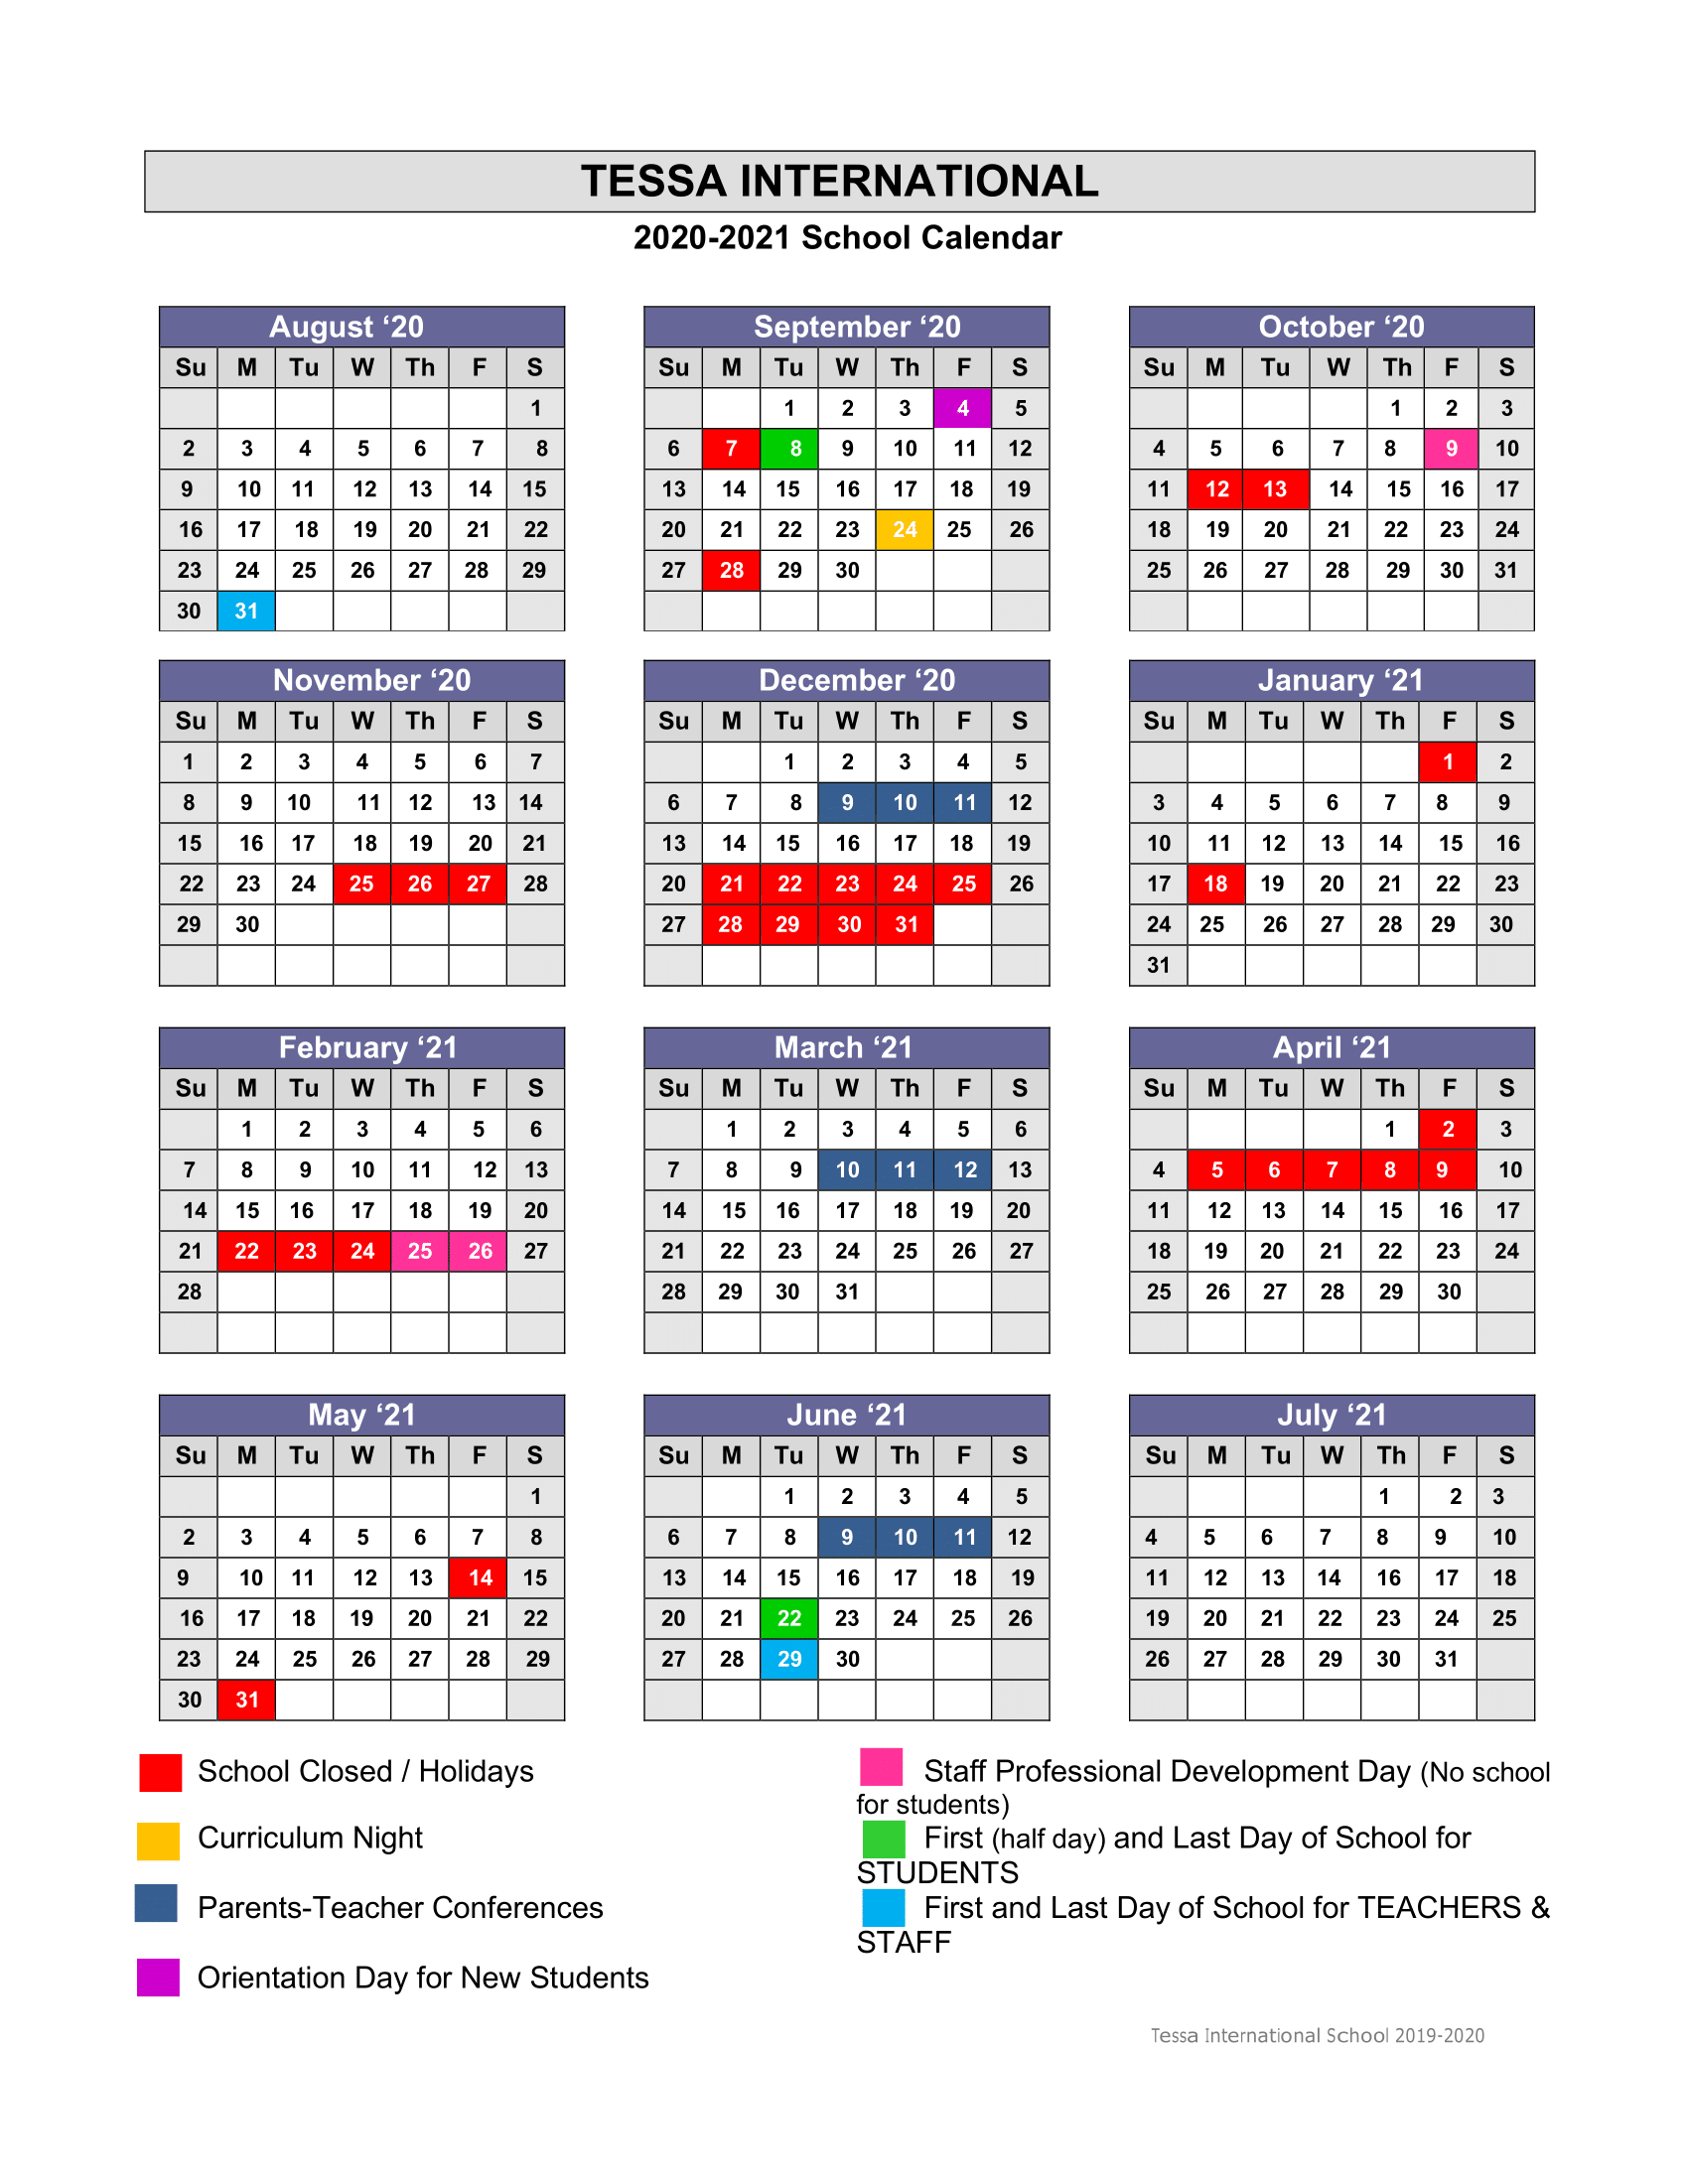 Academic Calendar 2020-2021 - Tessa International School